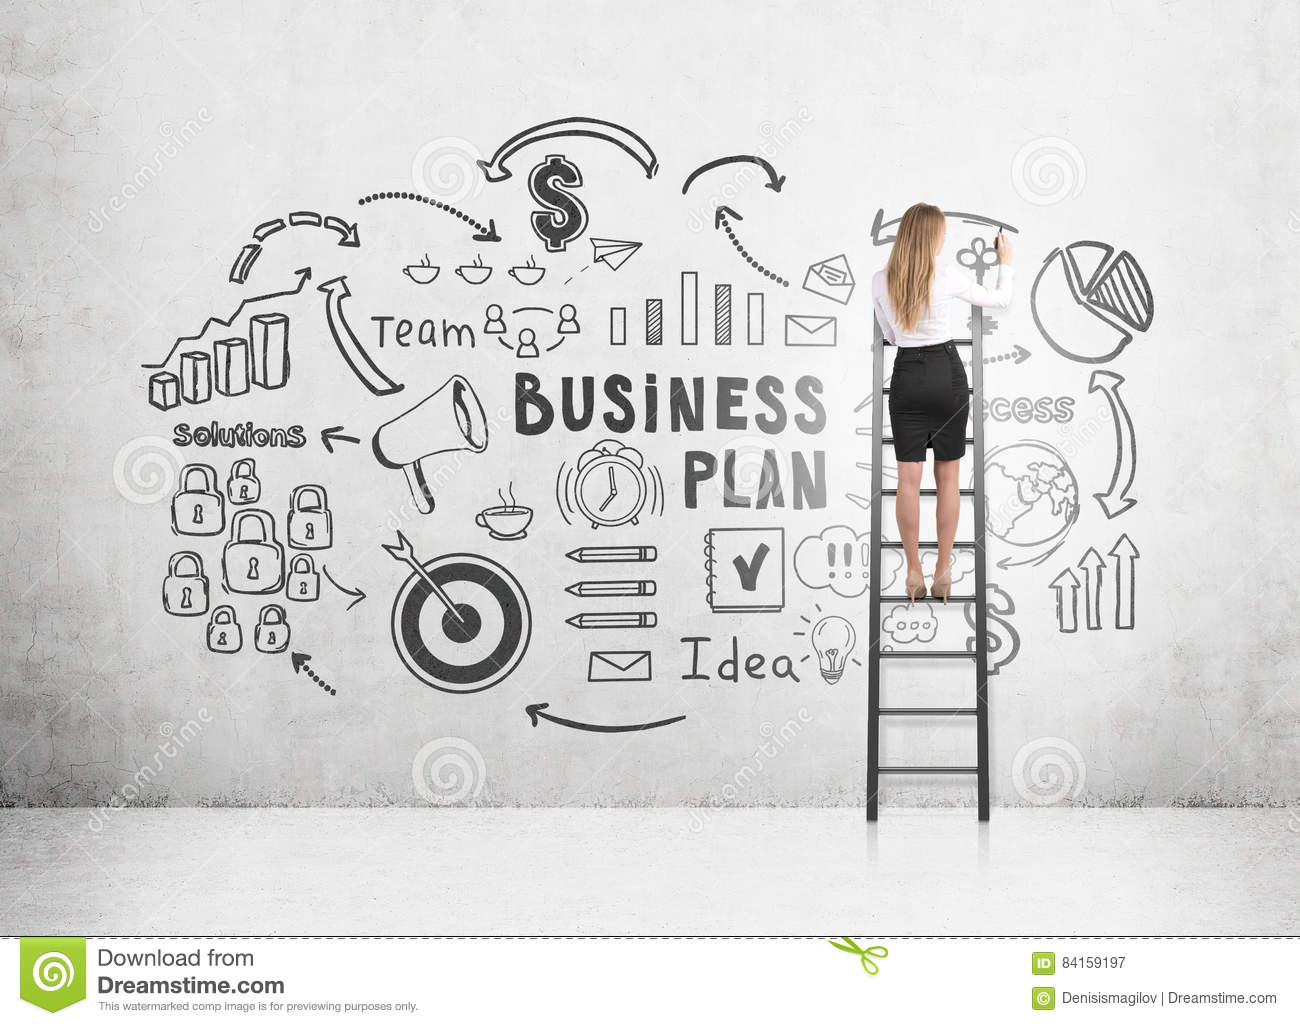 The Eight Key Elements of a Successful Business Plan and How to Make Them Work for You